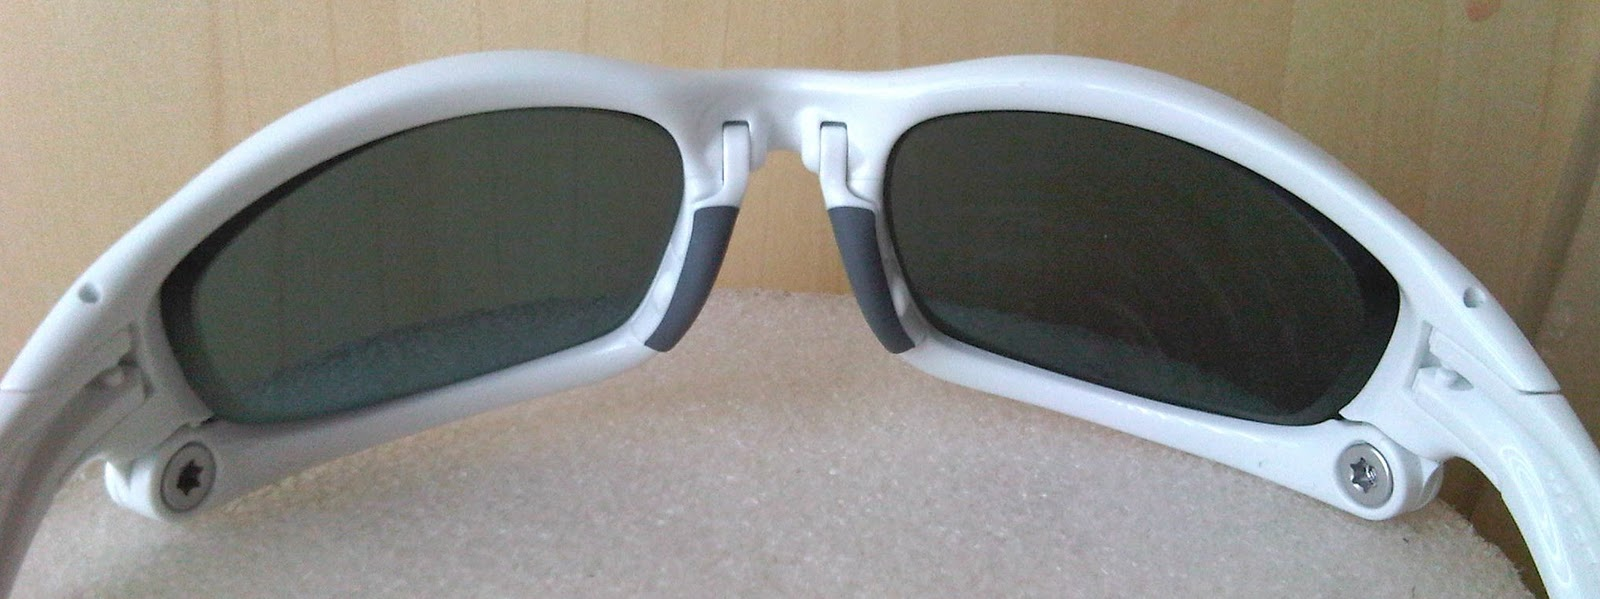 replacement prescription lenses for oakley sunglasses 0034  can i get prescription lenses in my oakley sunglasses